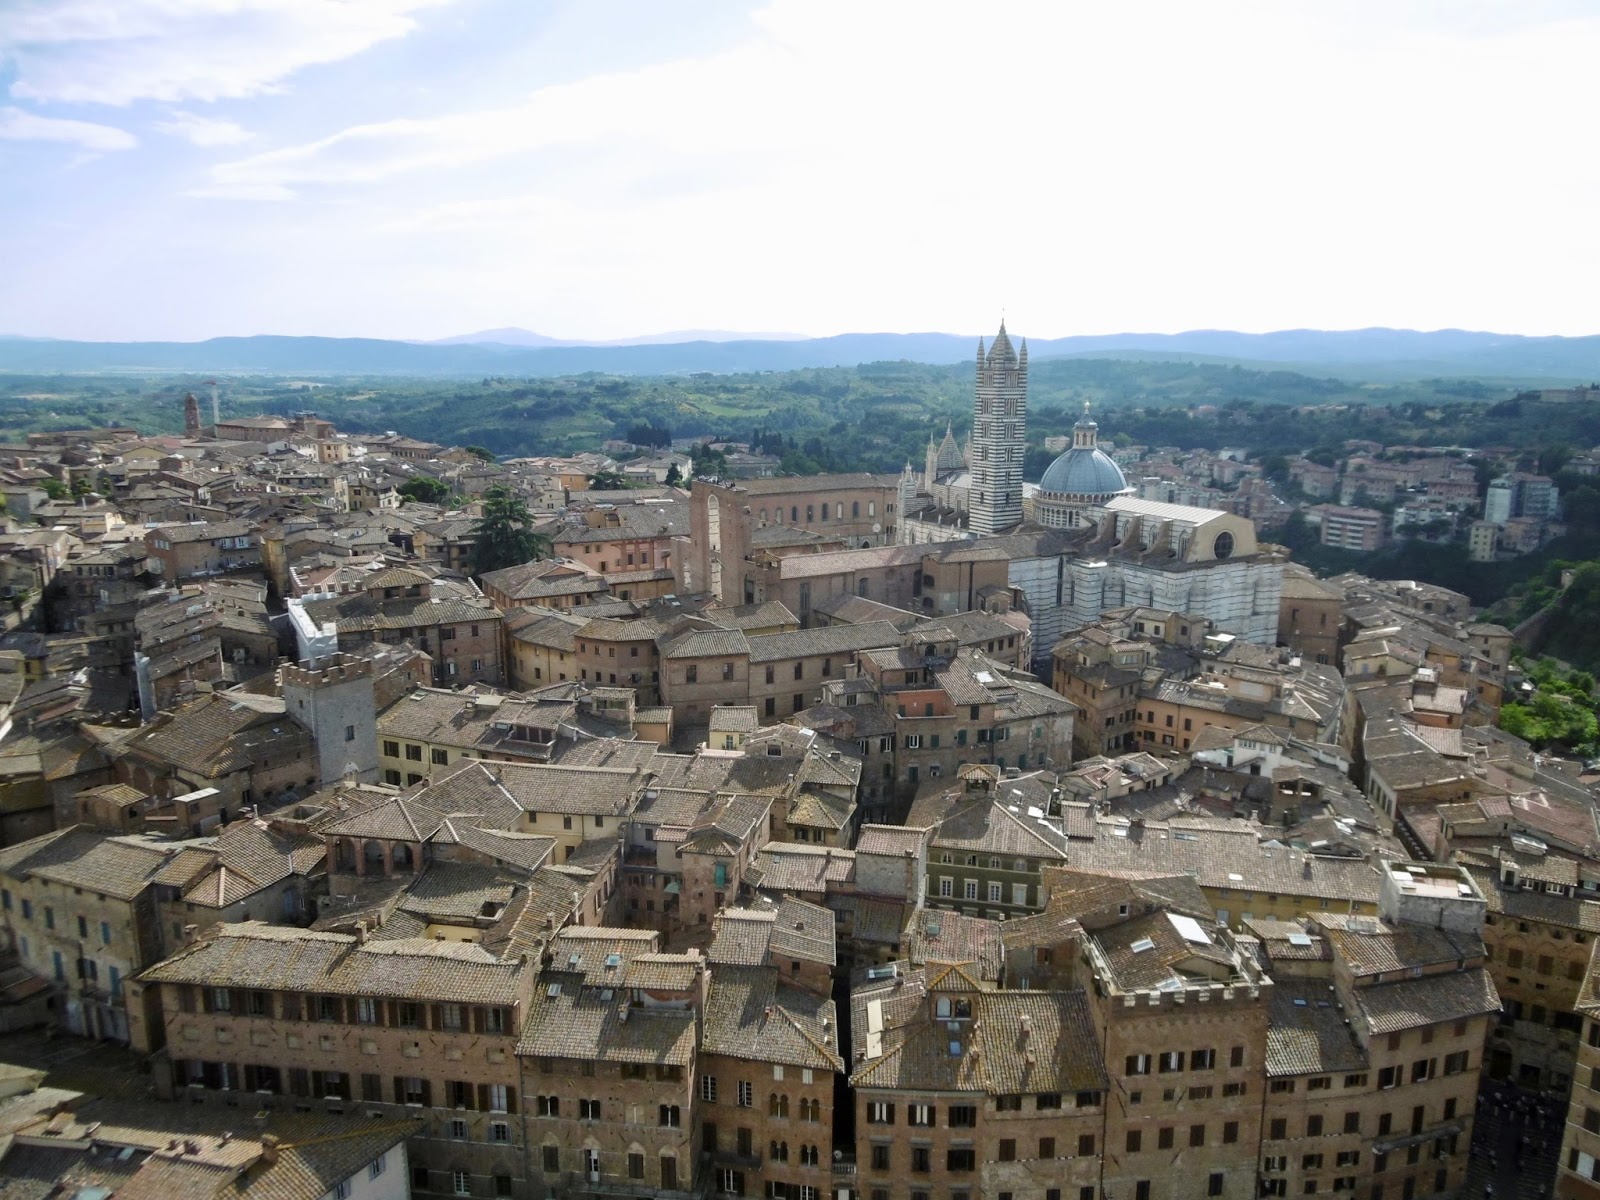 The view from the top of the Siena Tower in Italy,  Cal McTravels